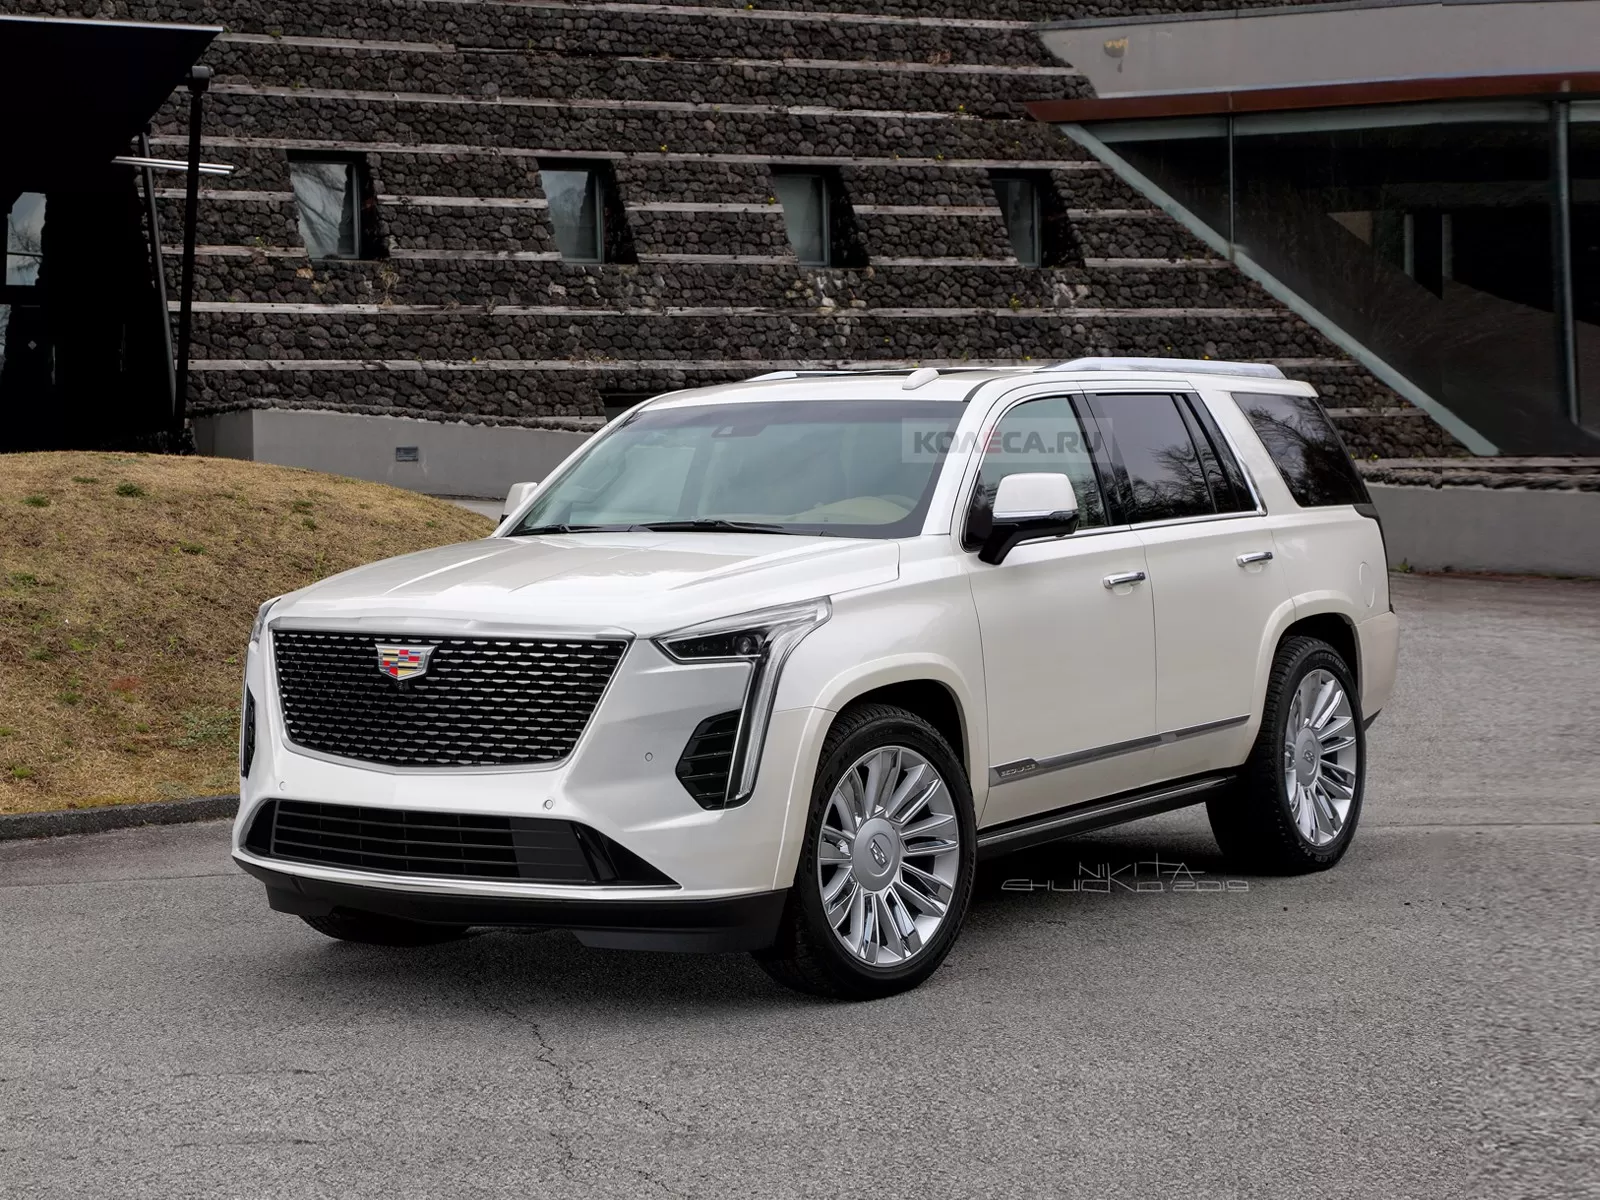 2021 Cadillac Escalade Rendered With CT6 Front, XT6 Rear ...